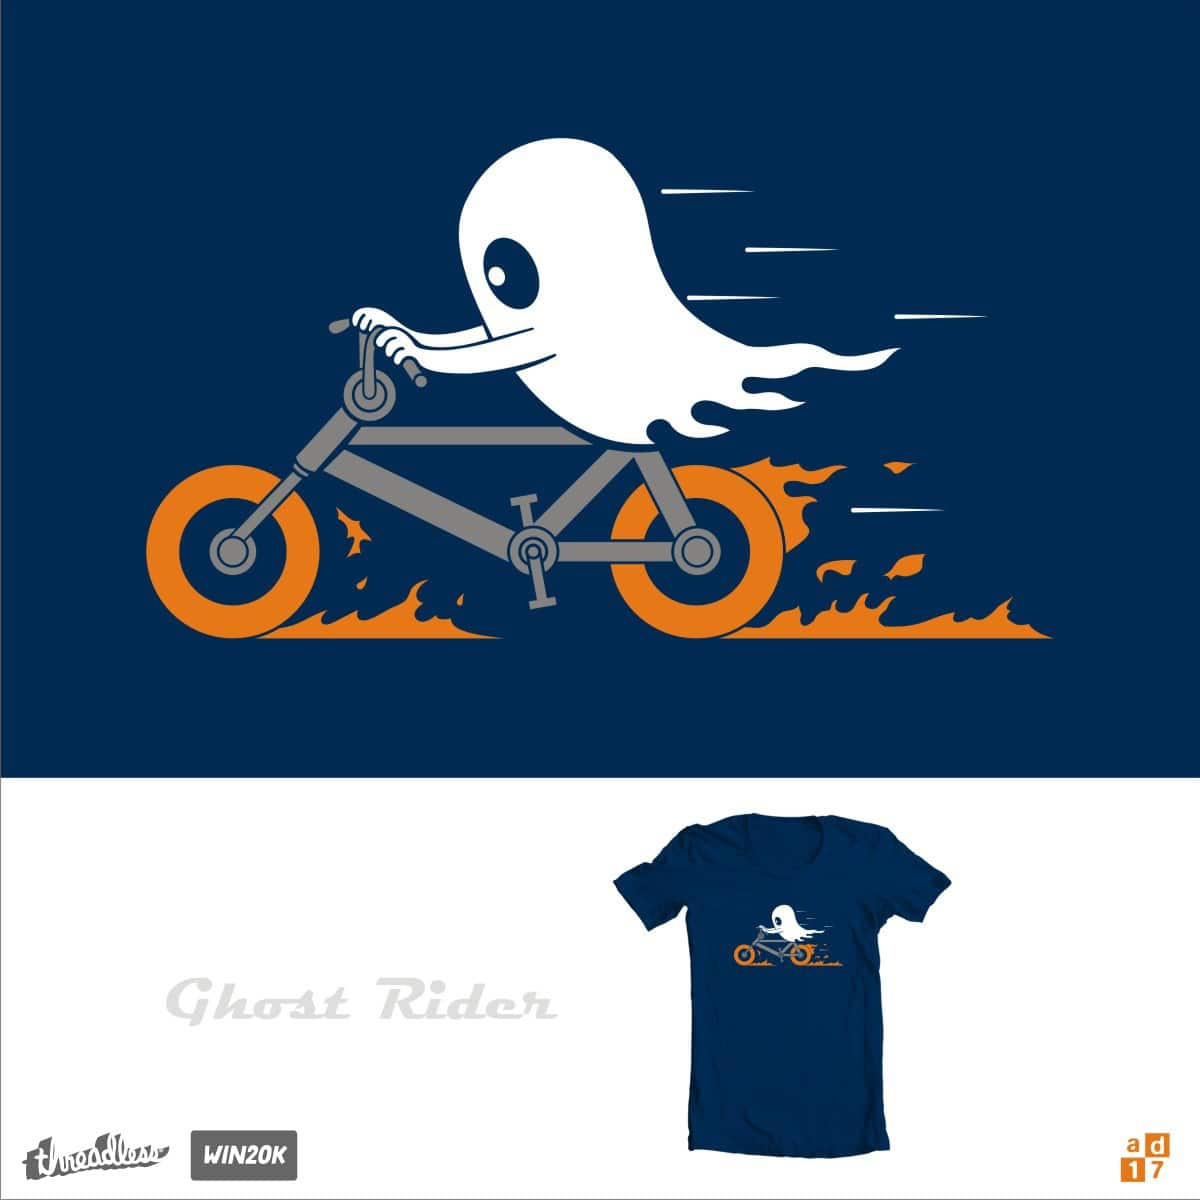 ghost rider by a.d.17 on Threadless